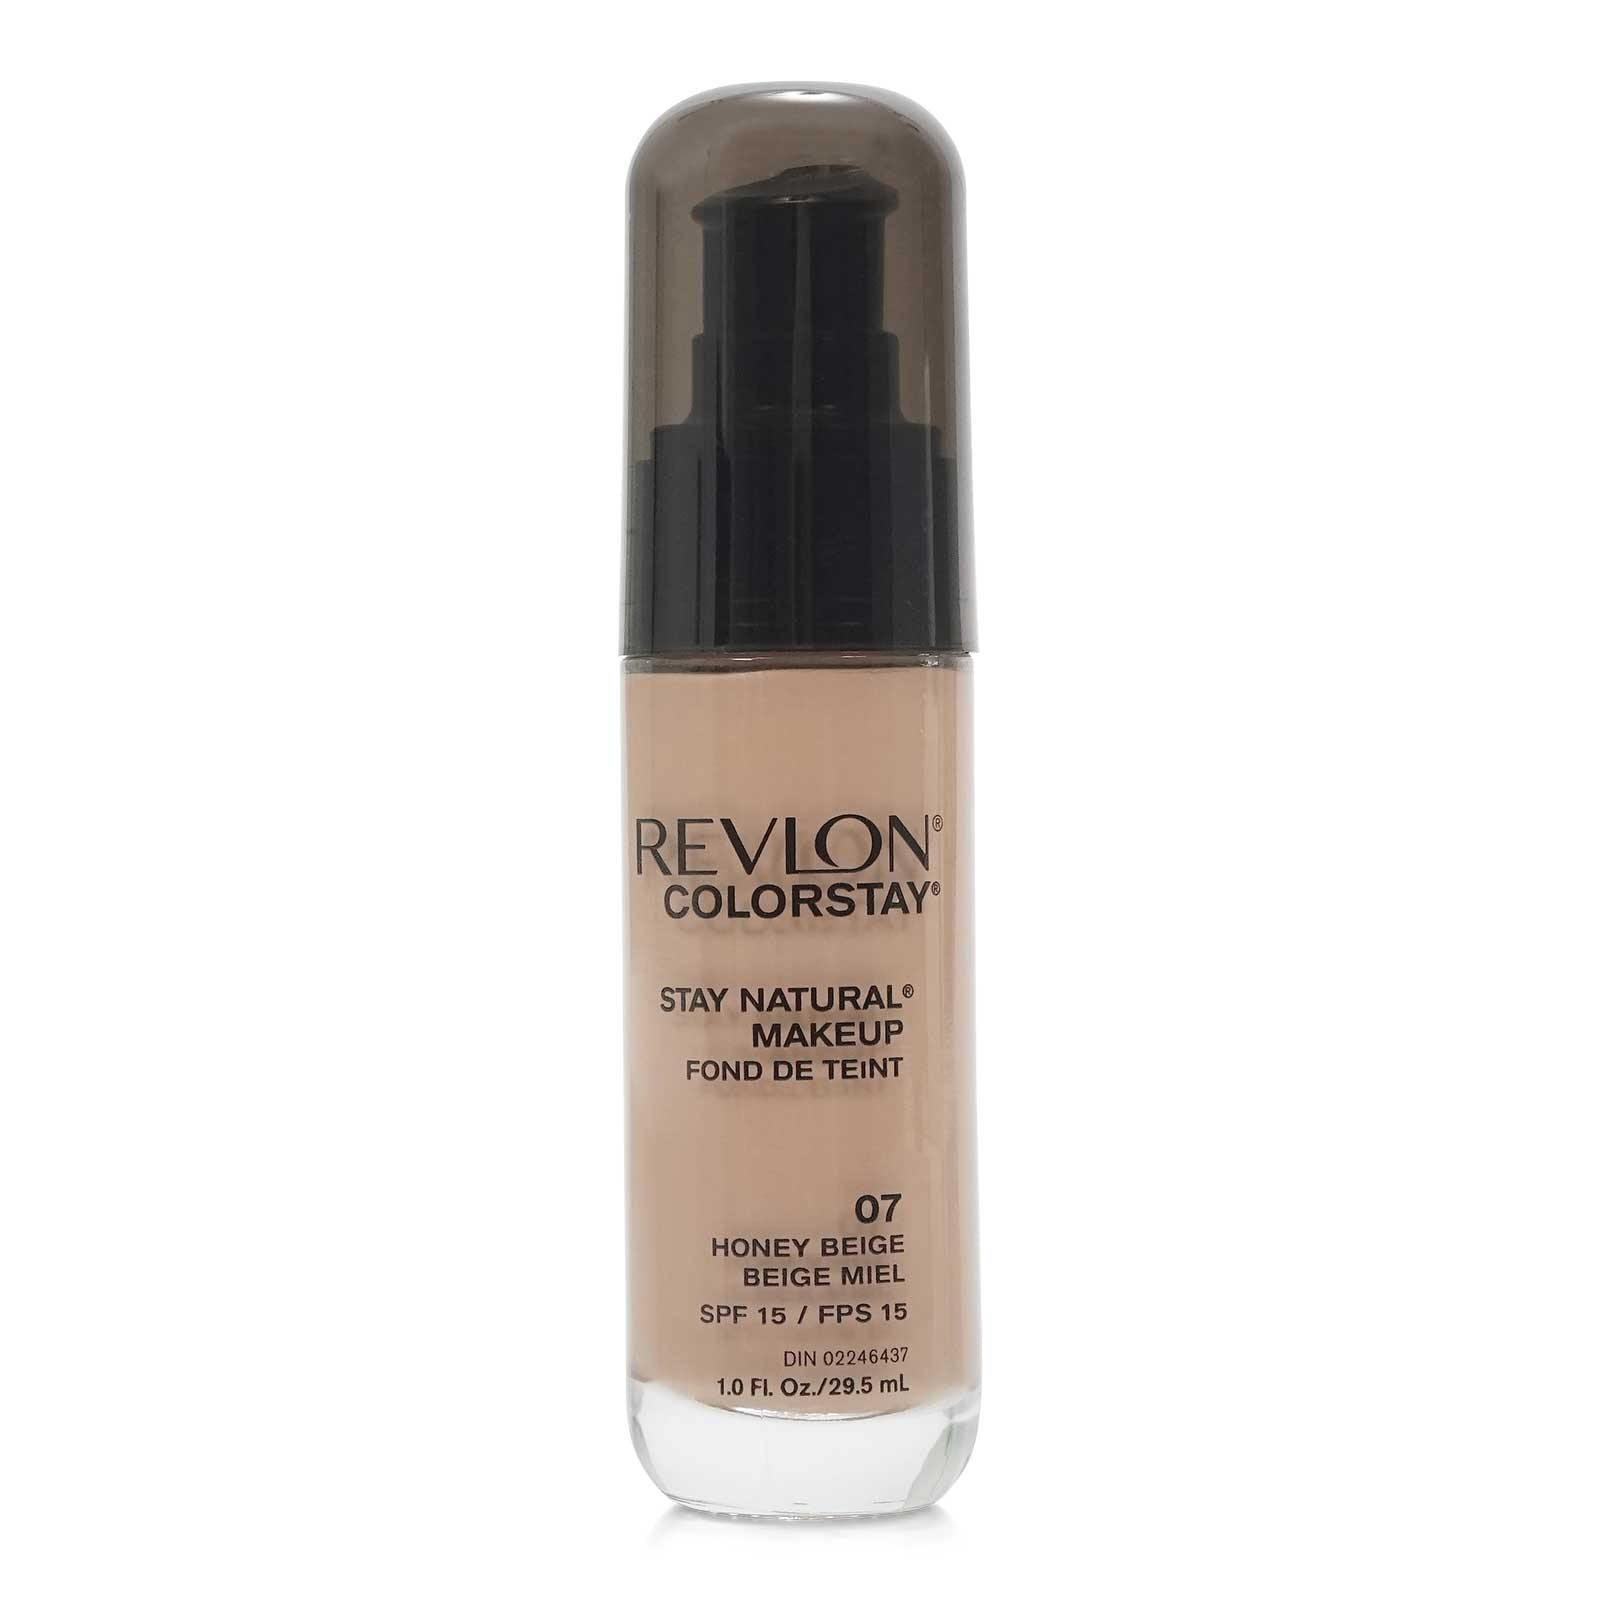 Revlon COLORSTAY STAY NATURAL MAKEUP - Honey beige (24/cs)